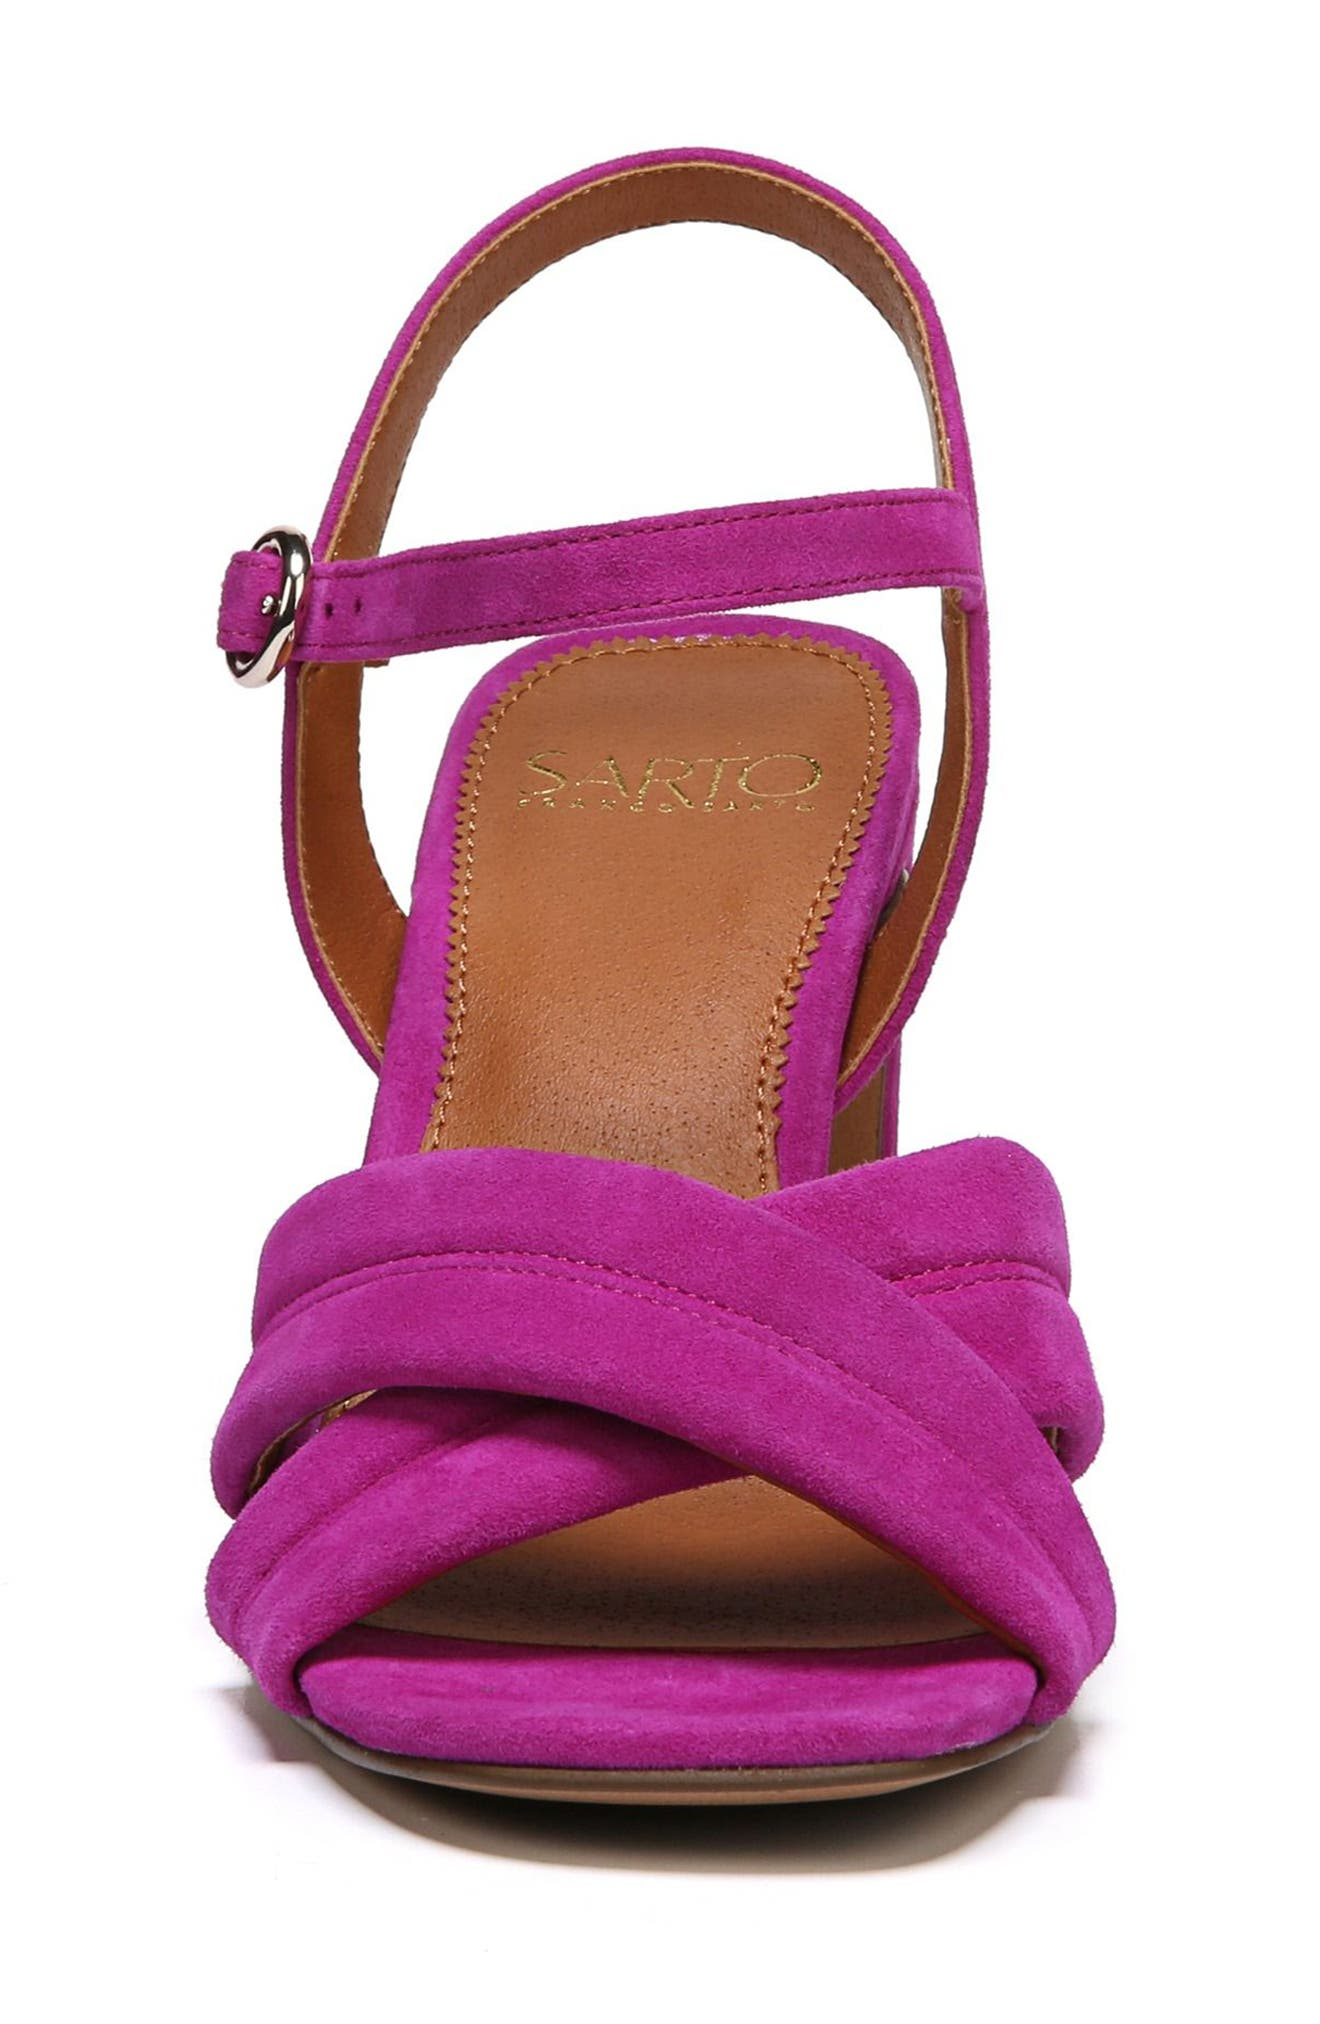 Kristina Sandal,                             Alternate thumbnail 19, color,